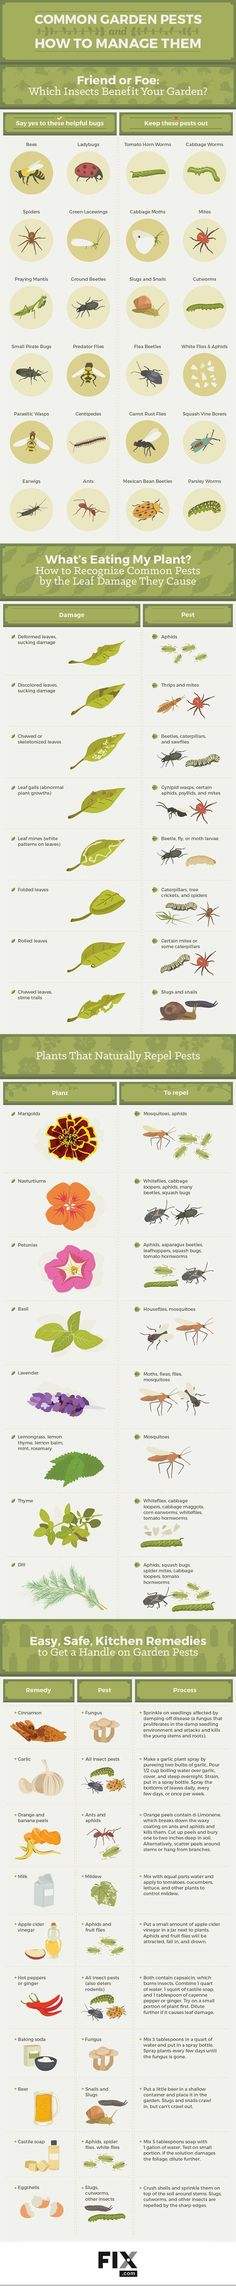 First you must recognize if the insects in your garden are even causing your plants harm...